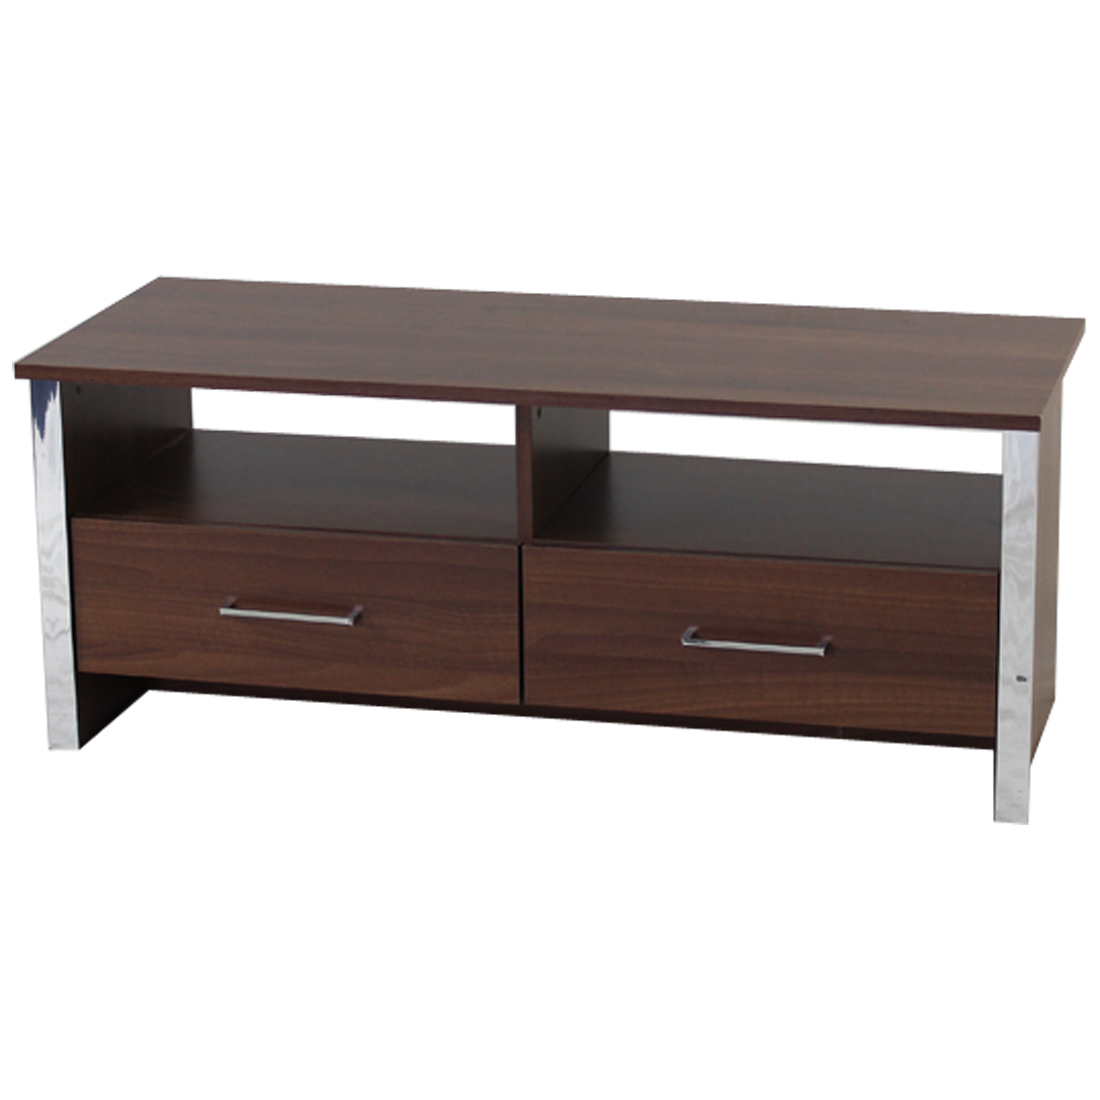 Gosport 2 Drawer Entertainment Unit